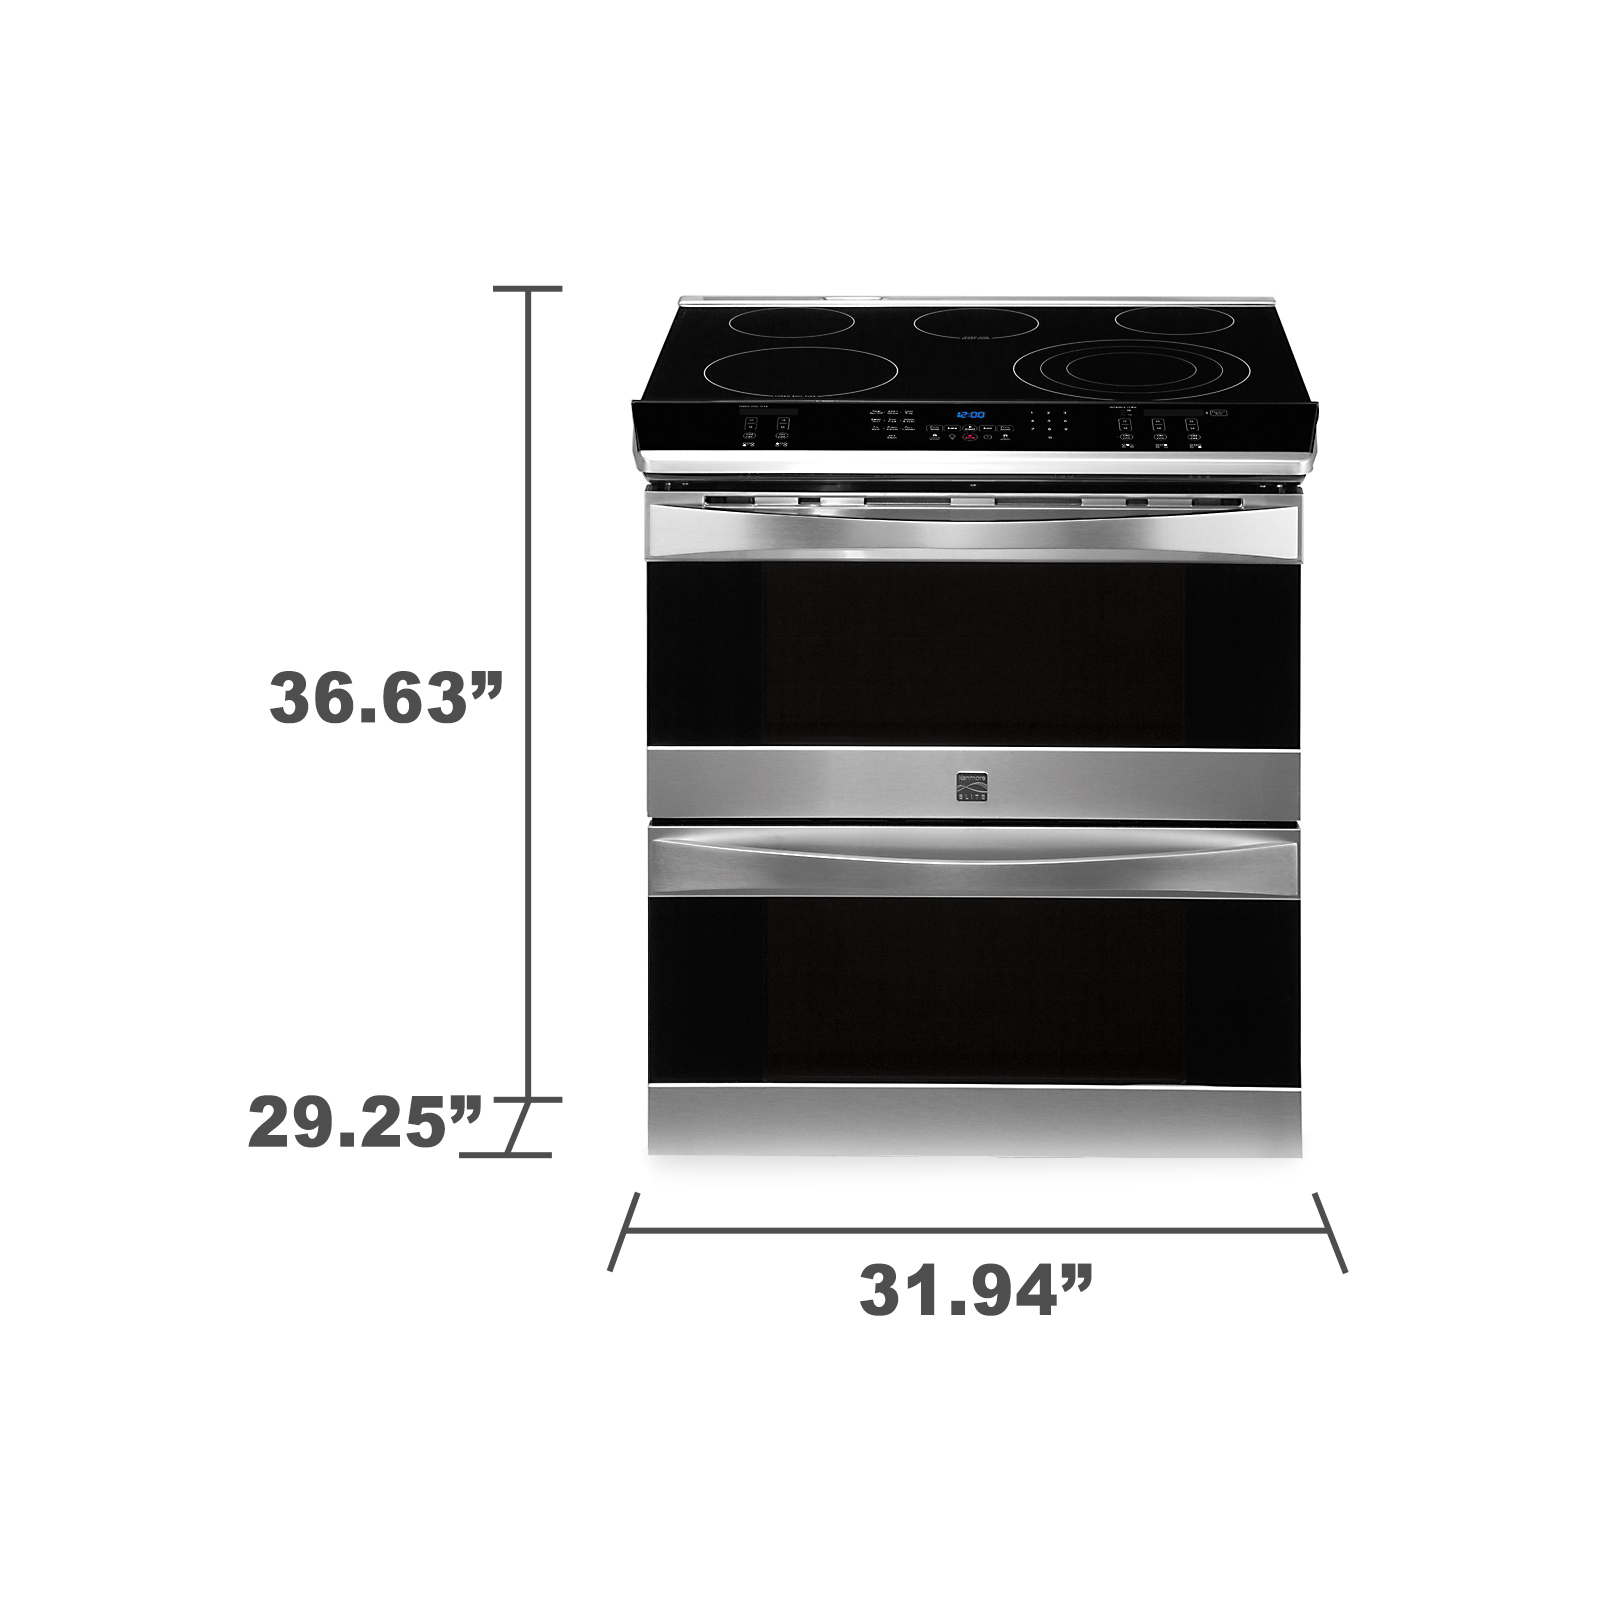 "Kenmore Elite 30"" Double-Oven Slide-In Electric Range w/ Convection - Stainless Steel"